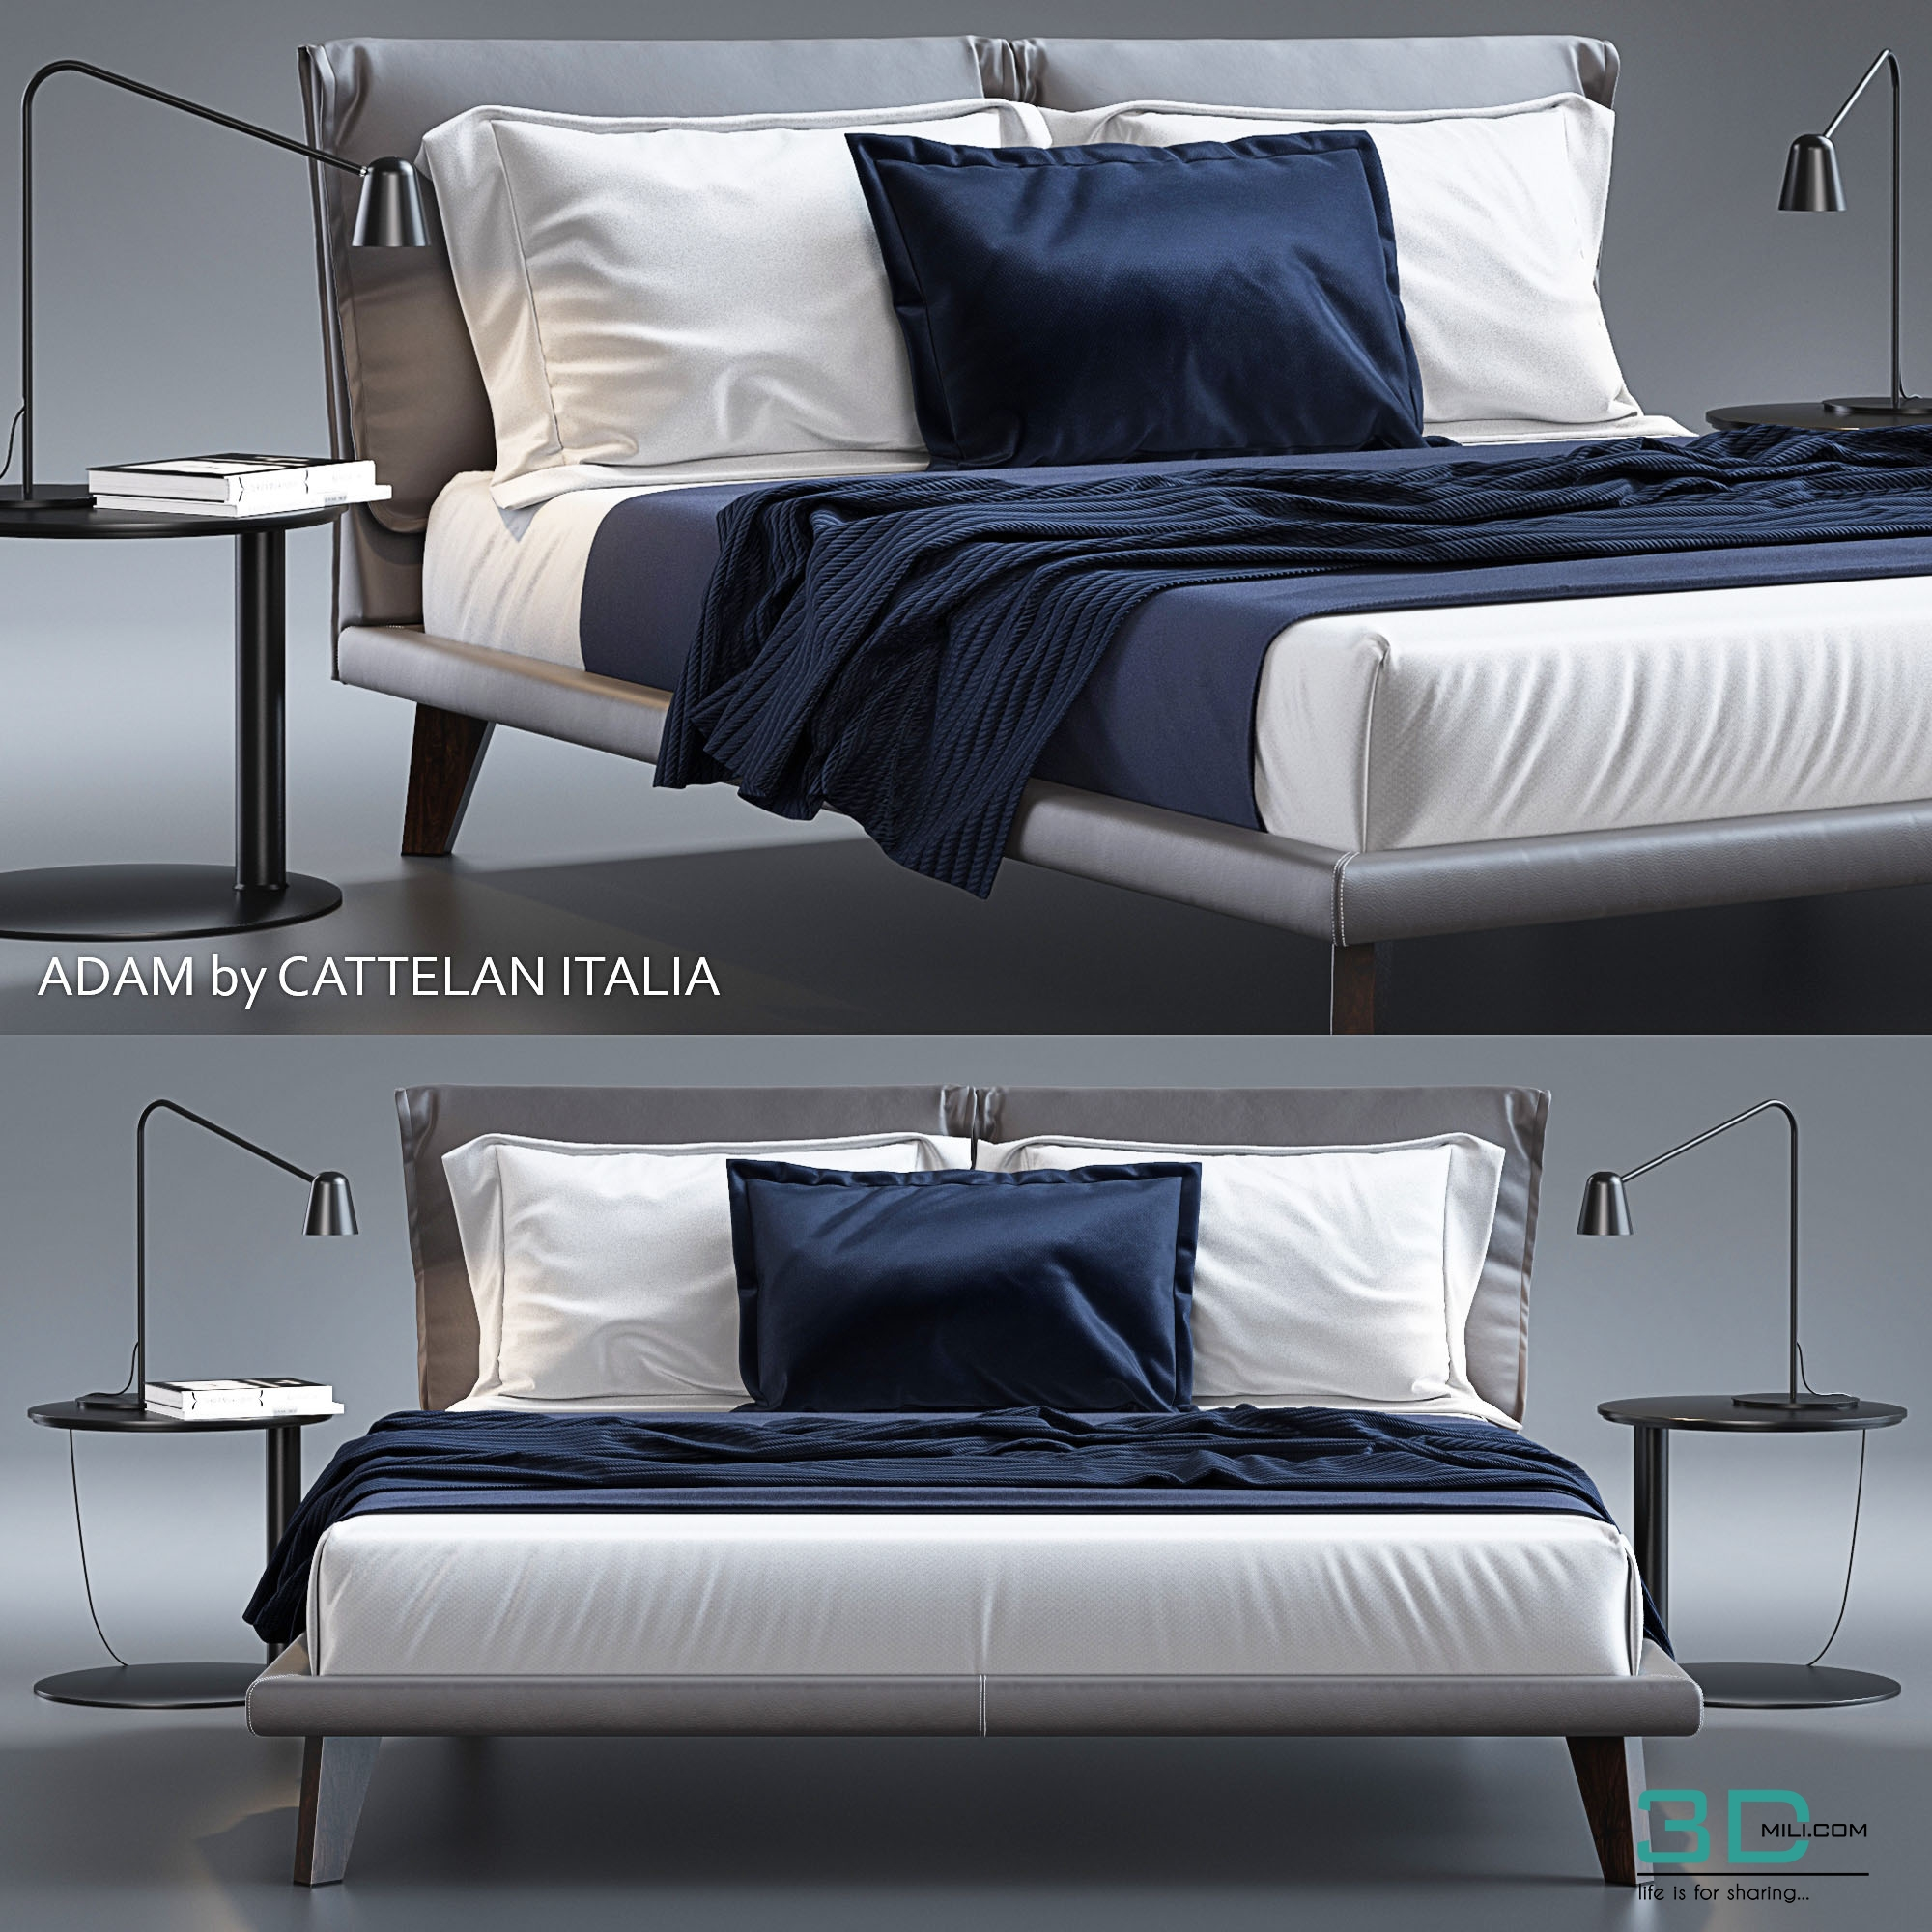 BED-Adam by Cattelan Italia - 3D Mili - Download 3D Model - Free 3D ...